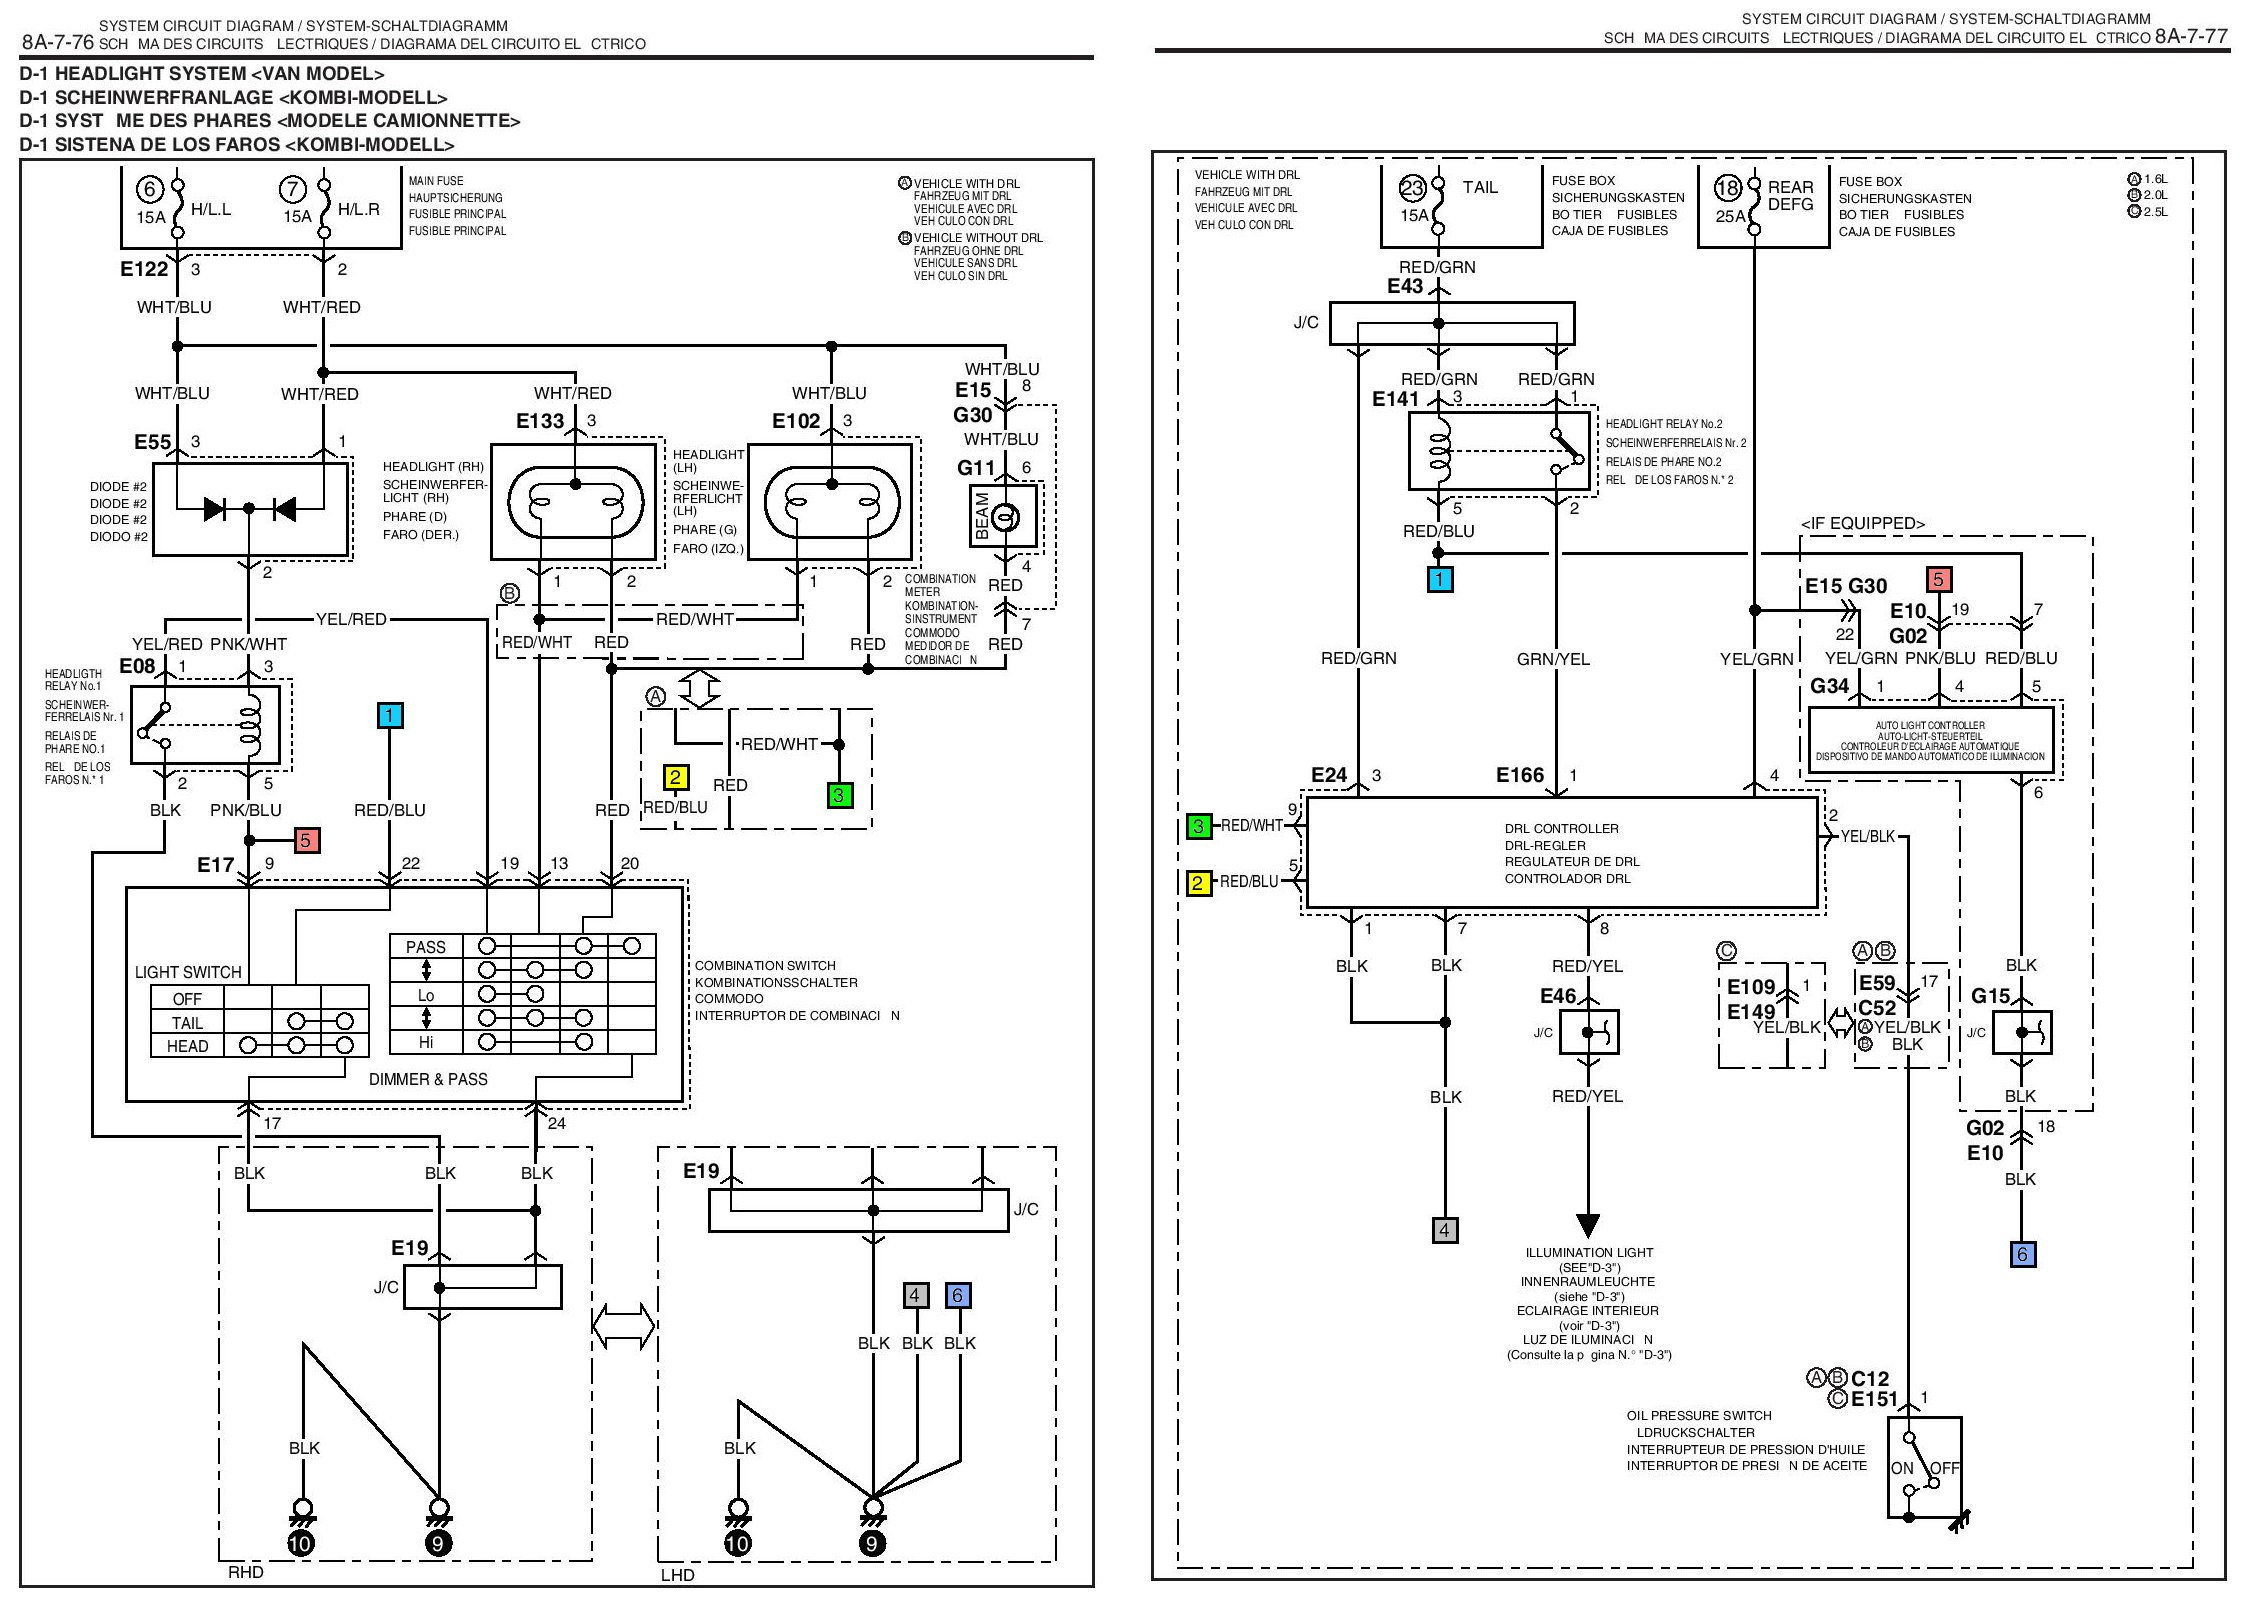 2008 suzuki xl7 wiring diagram wire center u2022 rh inkshirts co 2007 Suzuki XL7 Battery Location 2008 Suzuki XL7 BATT1 Circuit